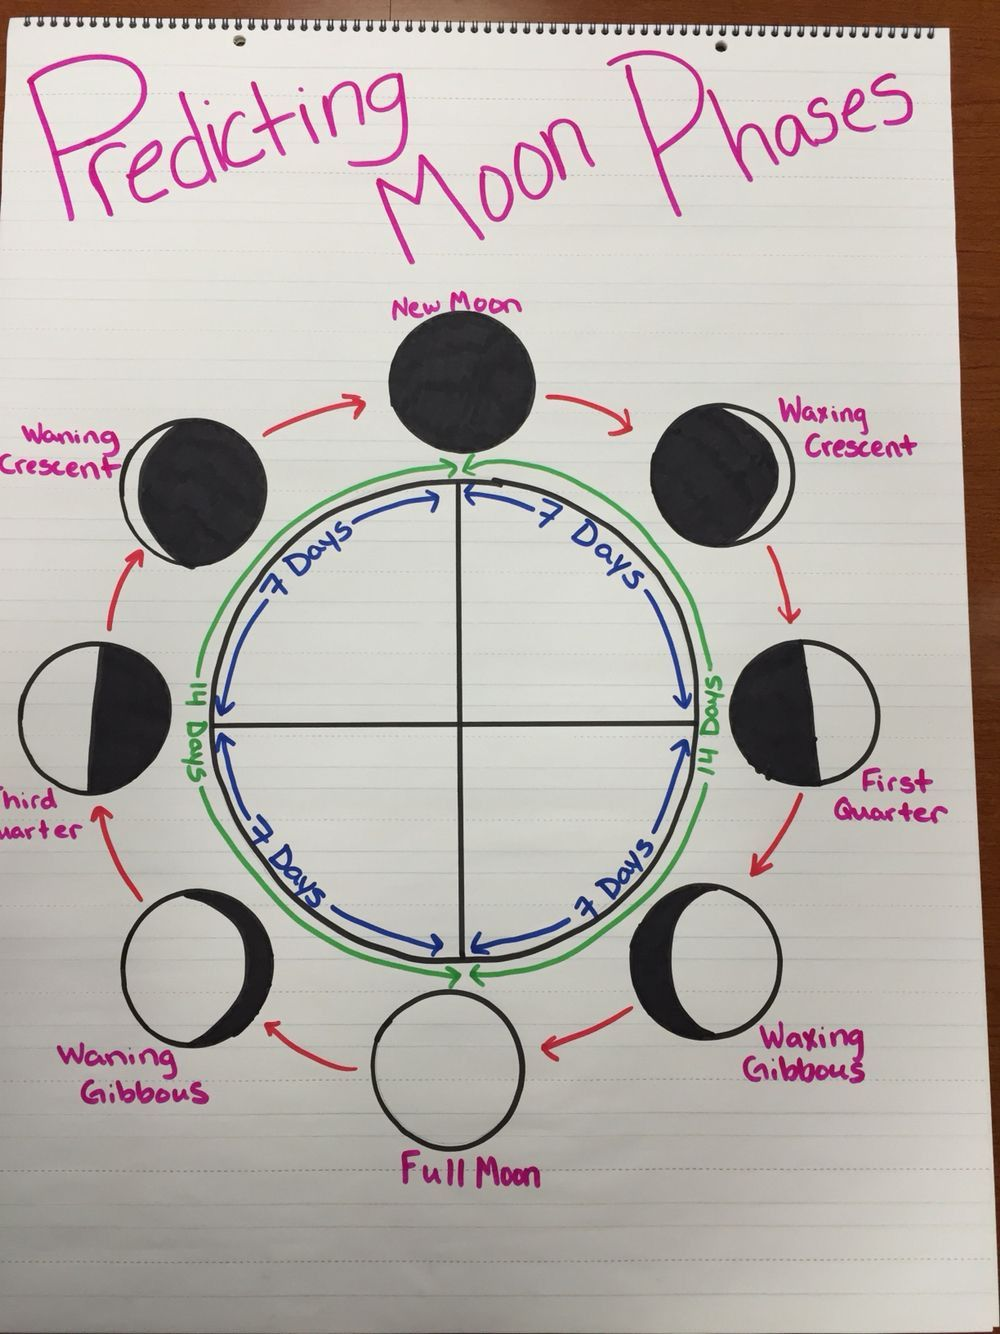 Moon Phases Worksheet 5th Grade In 2020 Science Anchor Charts Anchor Charts Middle School Science [ 1334 x 1000 Pixel ]